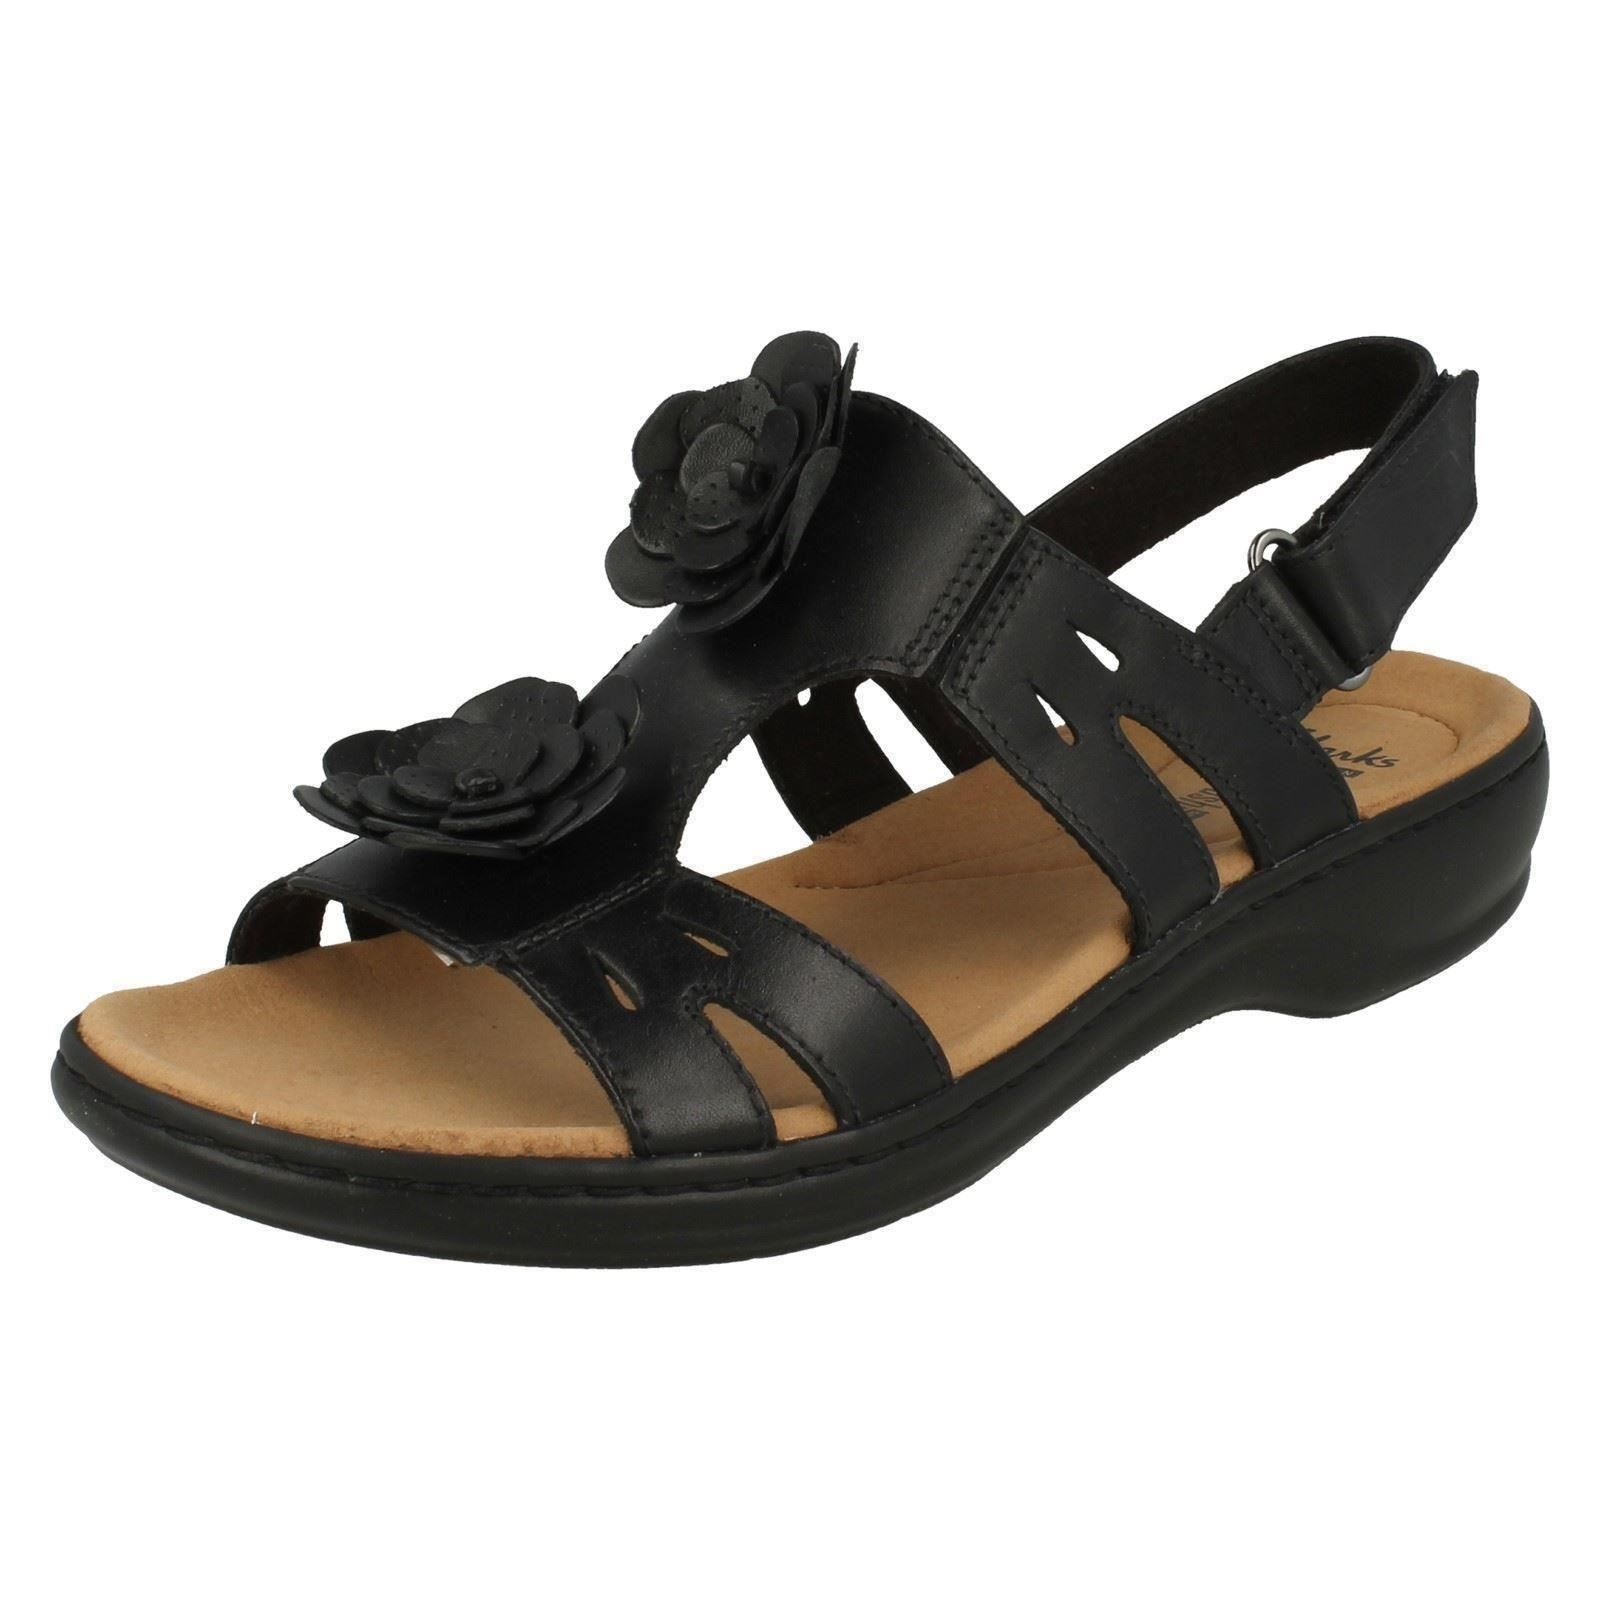 8a0b39930cf Ladies Clarks Flower Detailed Sandals Leisa Claytin UK 3.5 Black Leather D.  About this product. Picture 1 of 9  Picture 2 of 9 ...